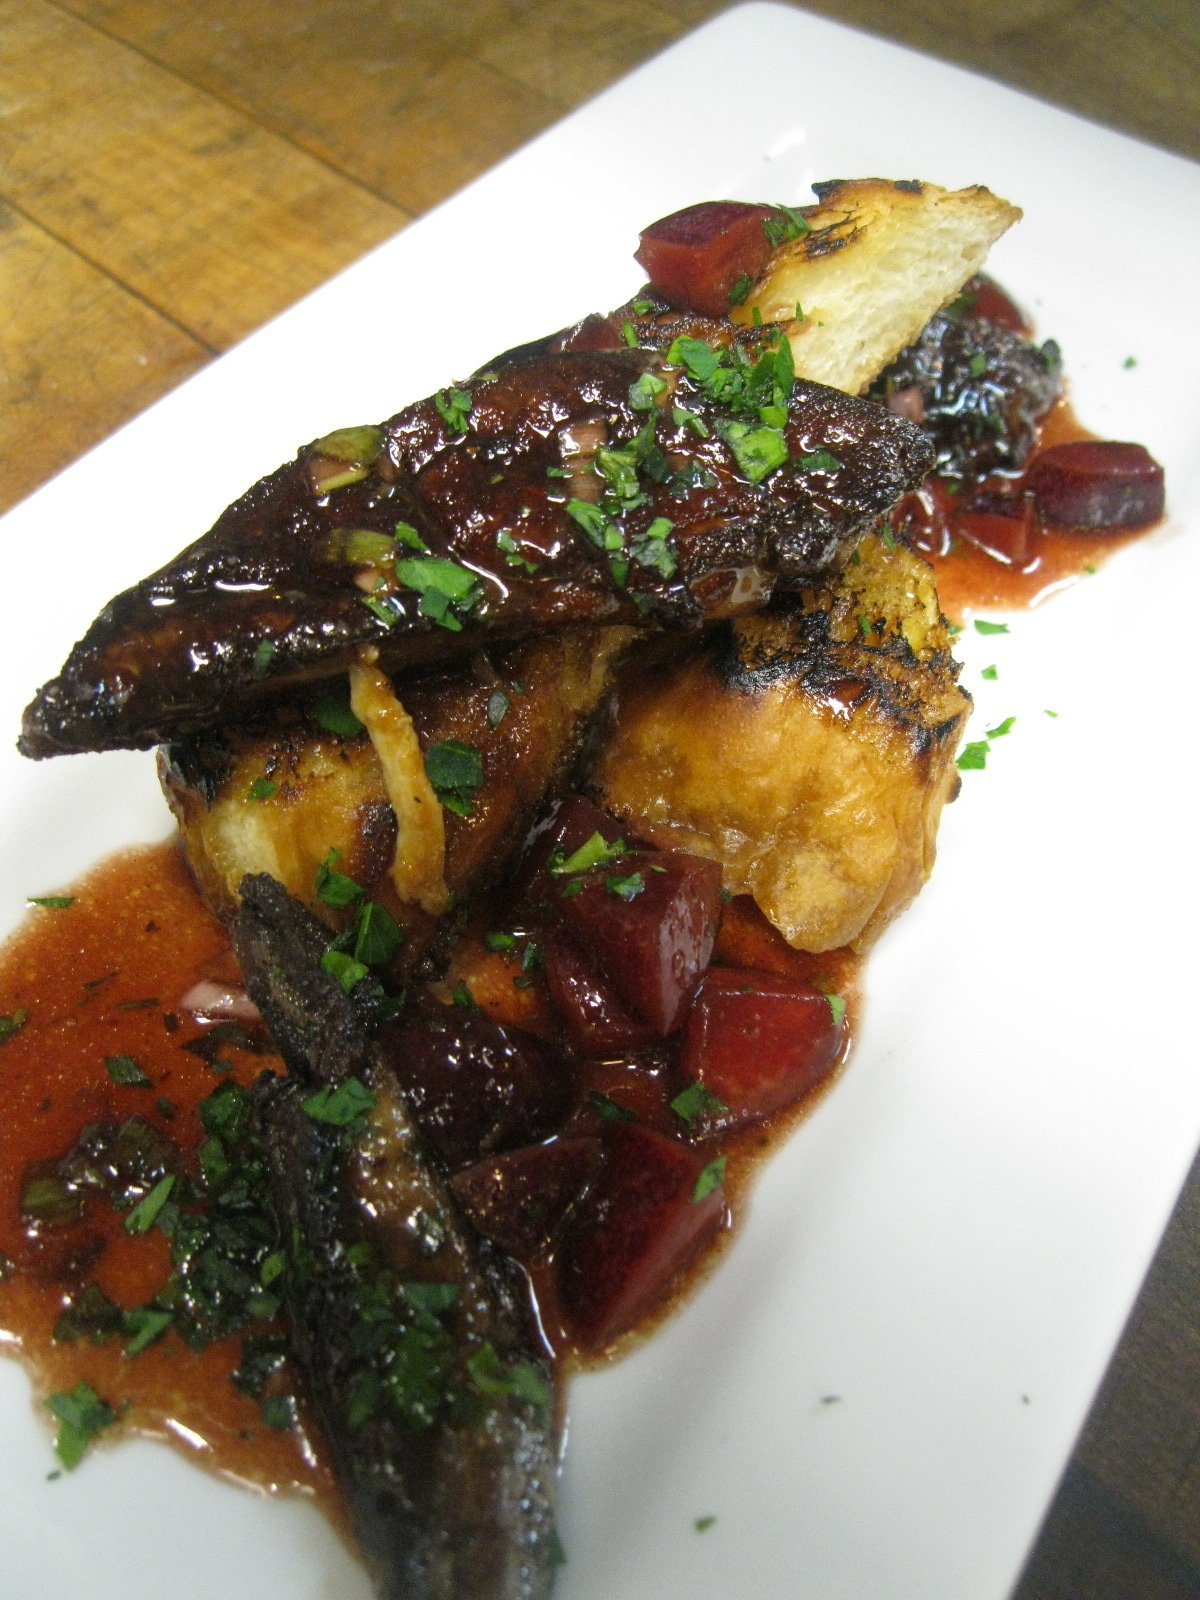 Pan seared Foie Gras with caramelized pears and a balsamic zinfandel reduction